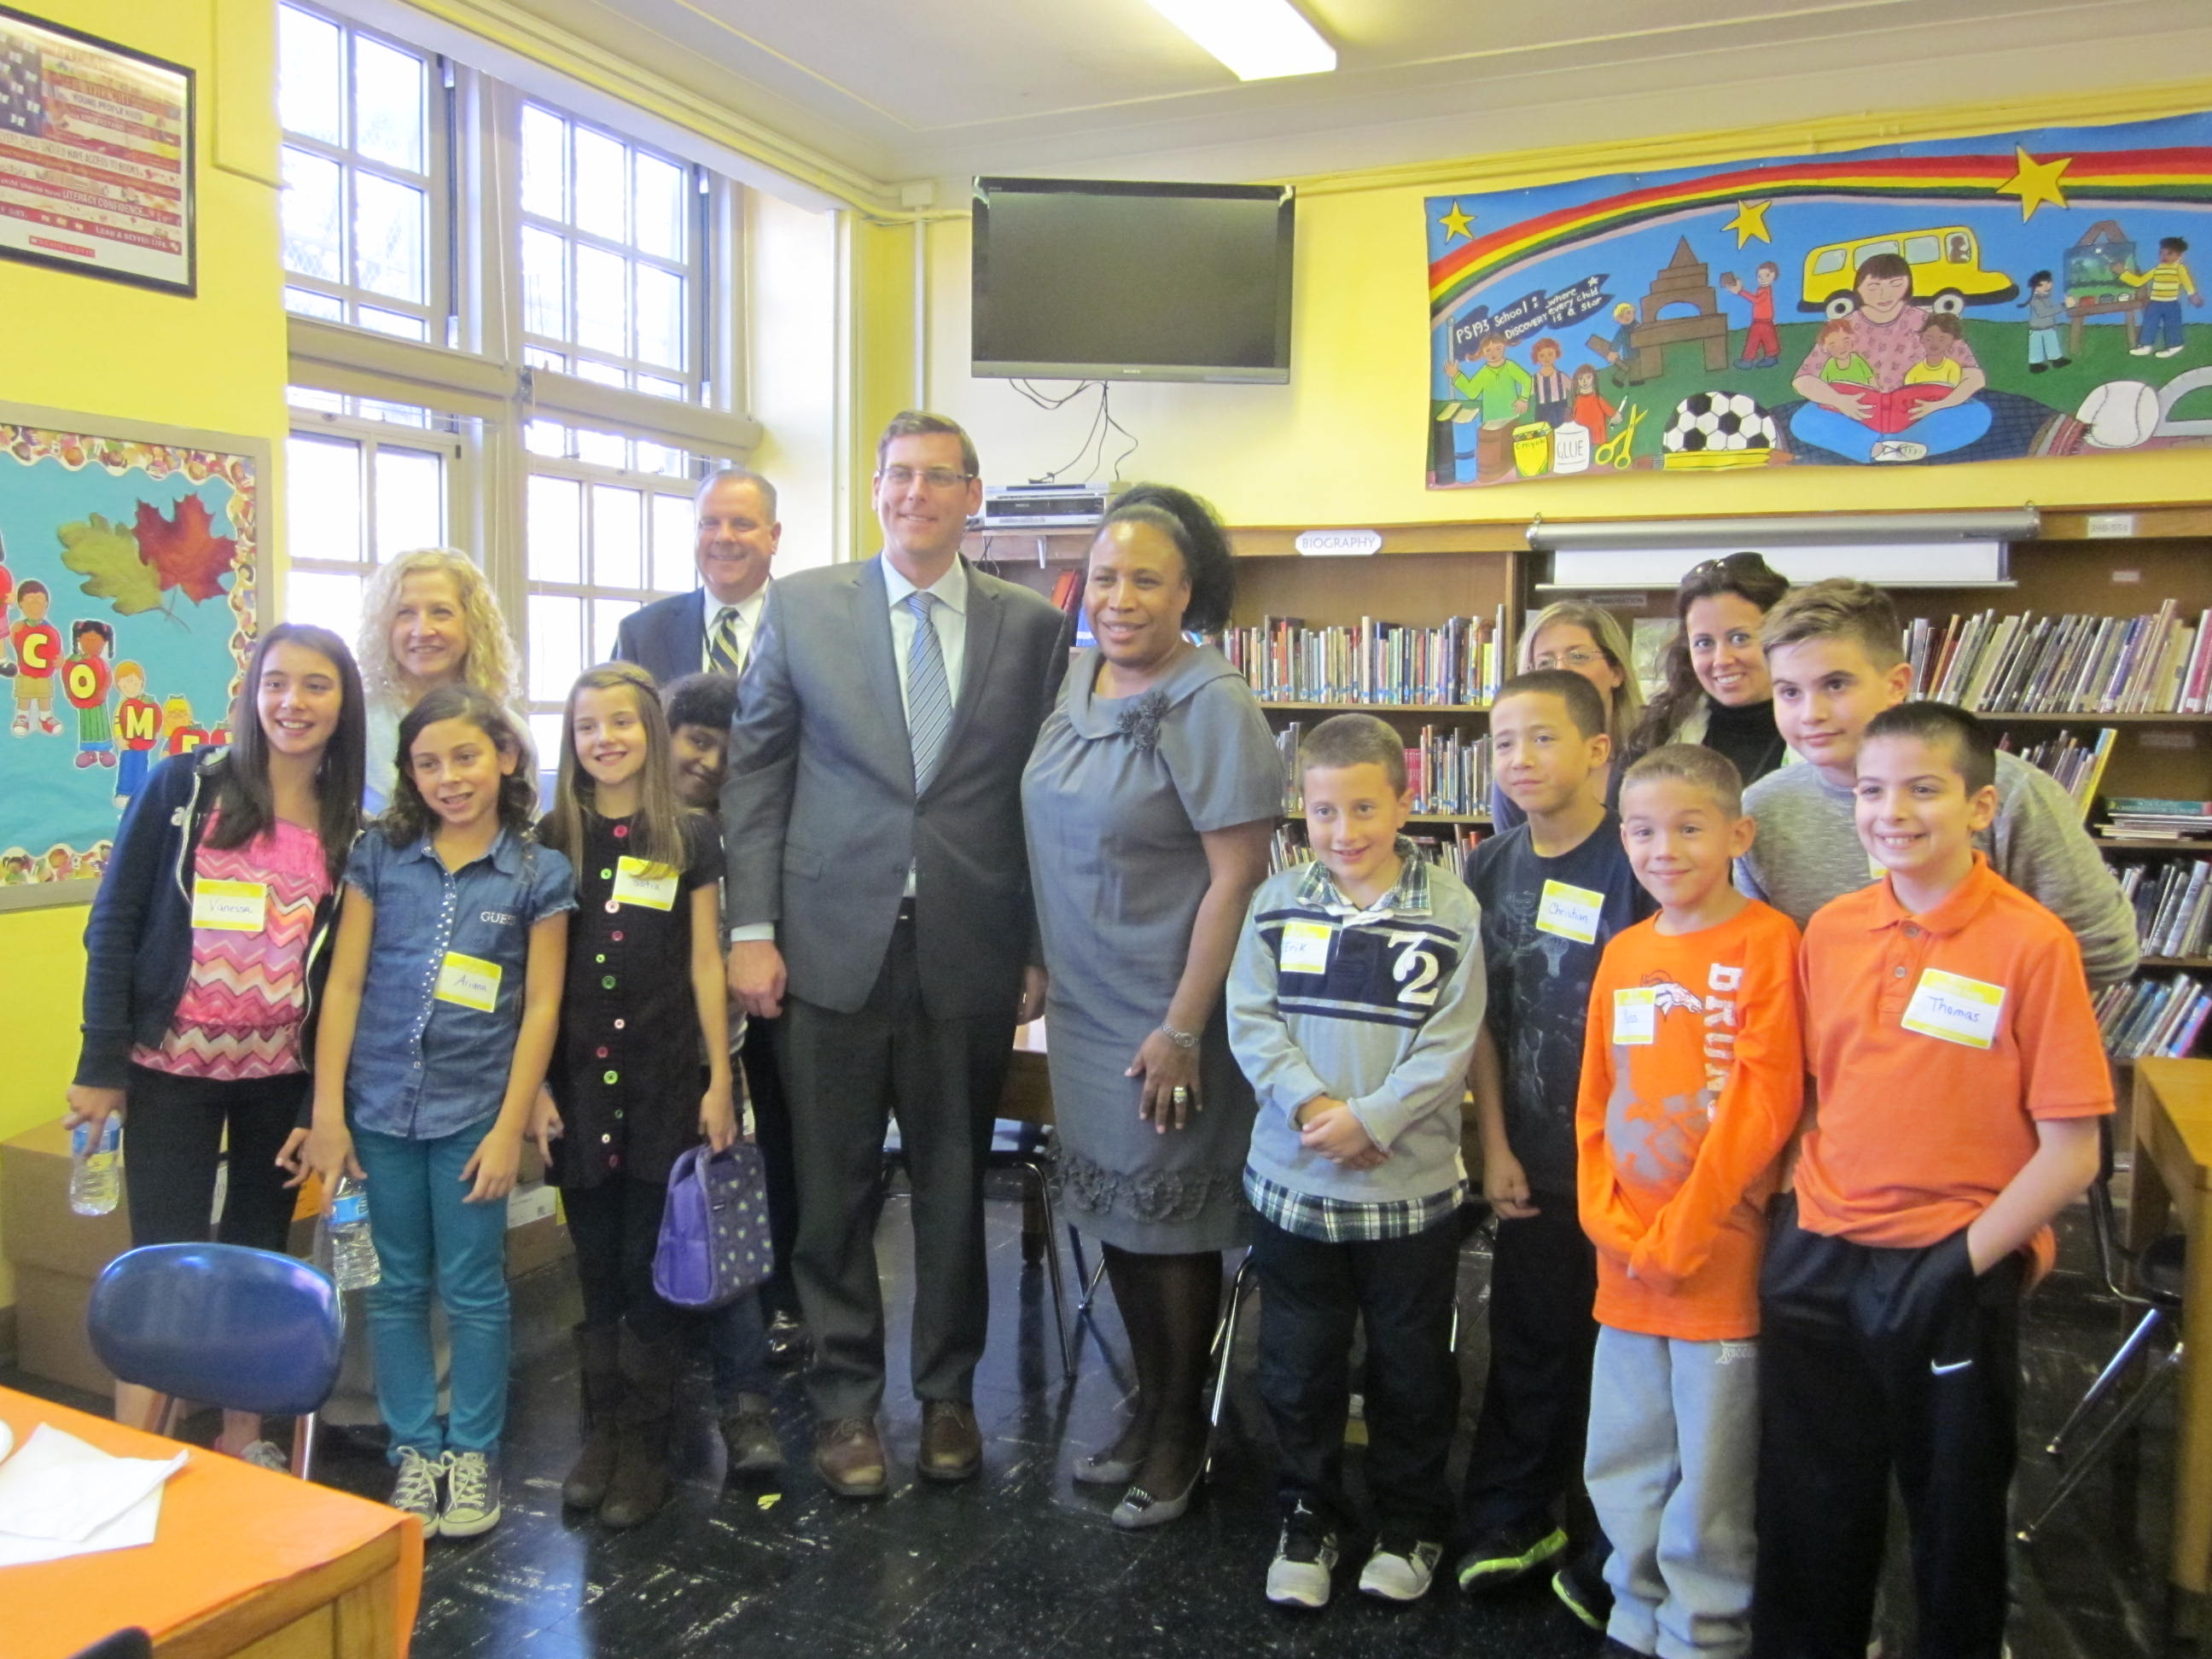 On Monday, October 28, 2013, Assemblyman Braunstein served as Principal for a Day at PS 193. He is pictured here with Principal Joyce Bush, PTA Co-Presidents Athena Pappas and Laura Koutsavlis, PTA Community Liaison George Kosnik, and Susan Pesso, chair of the SLT committee.